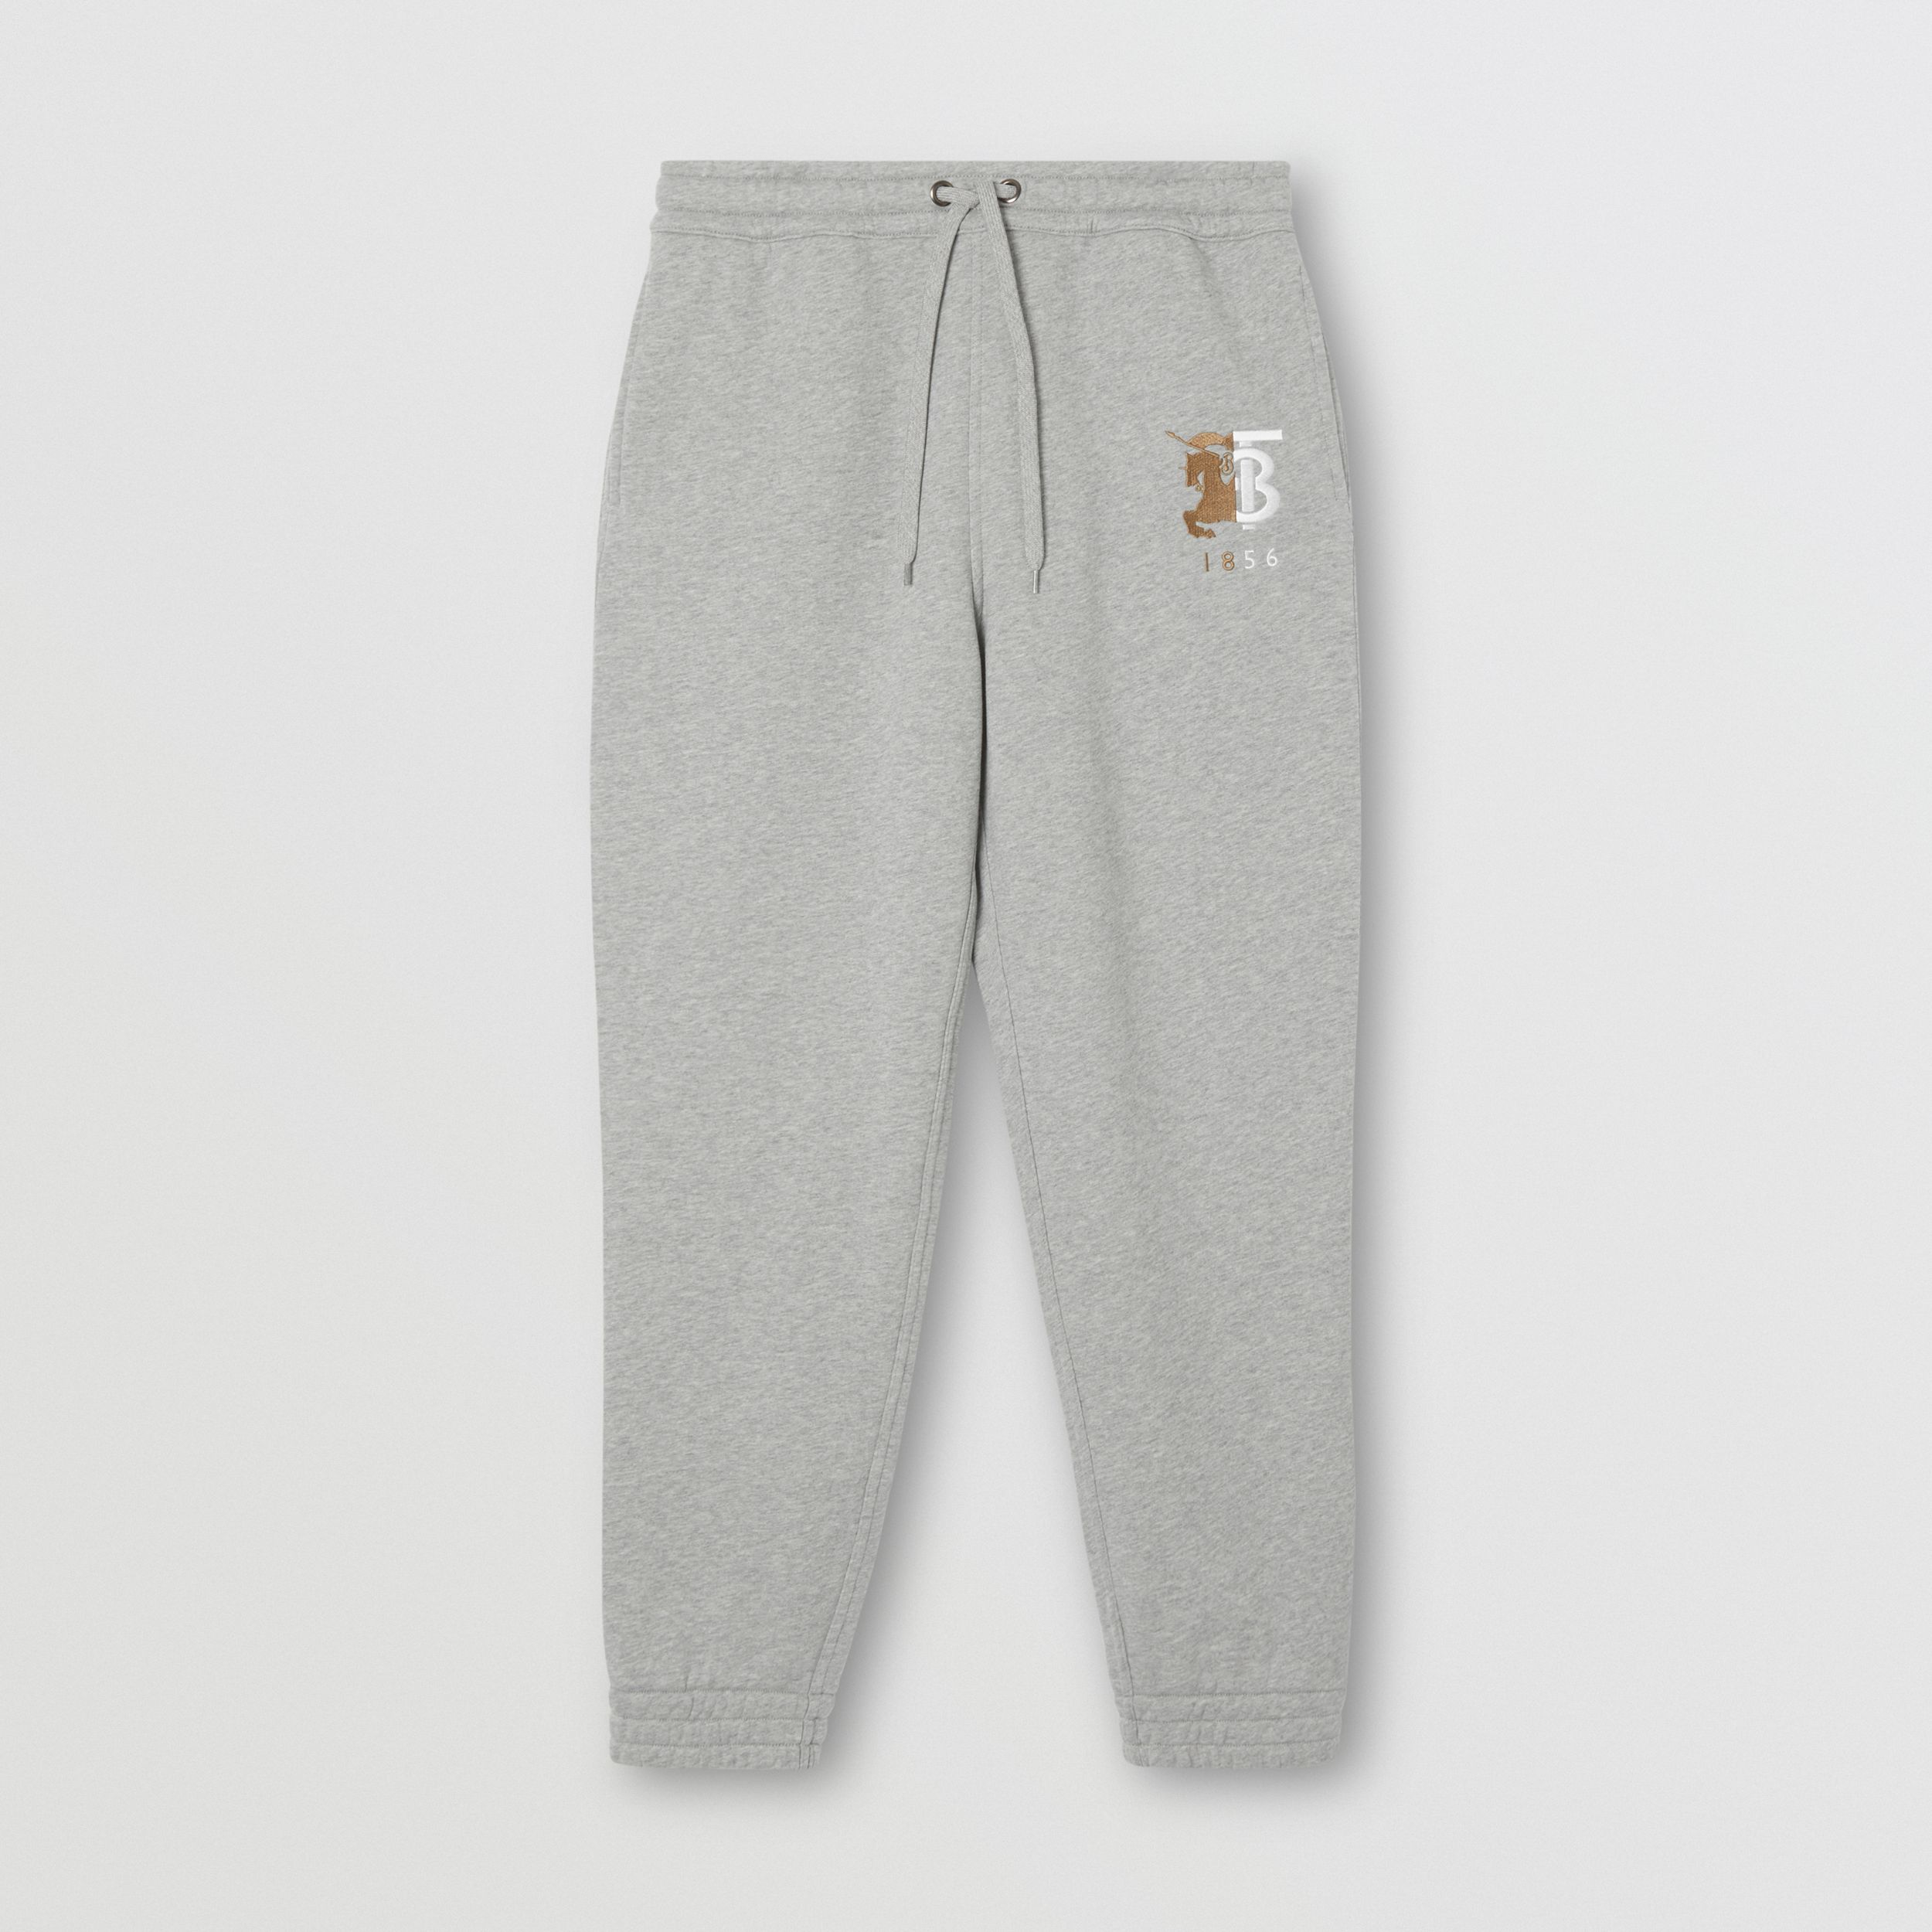 Contrast Logo Graphic Cotton Trackpants in Pale Grey Melange - Men | Burberry - 4